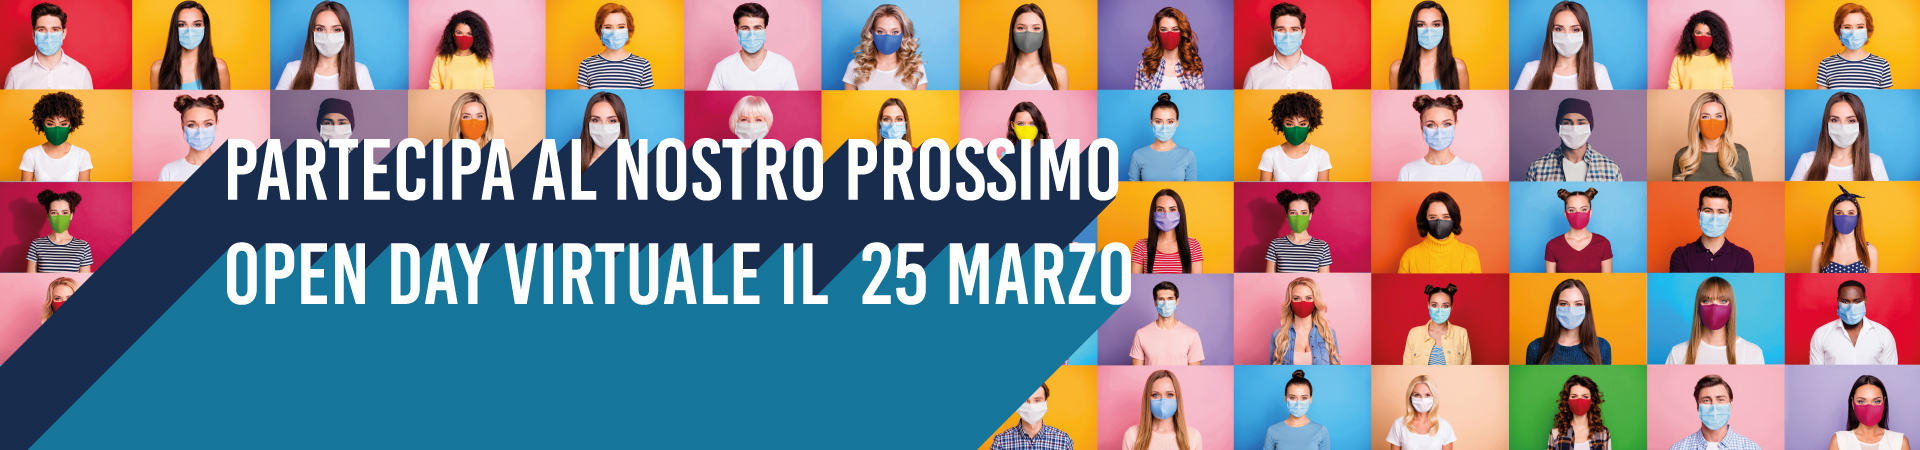 Open Day 25 marzo